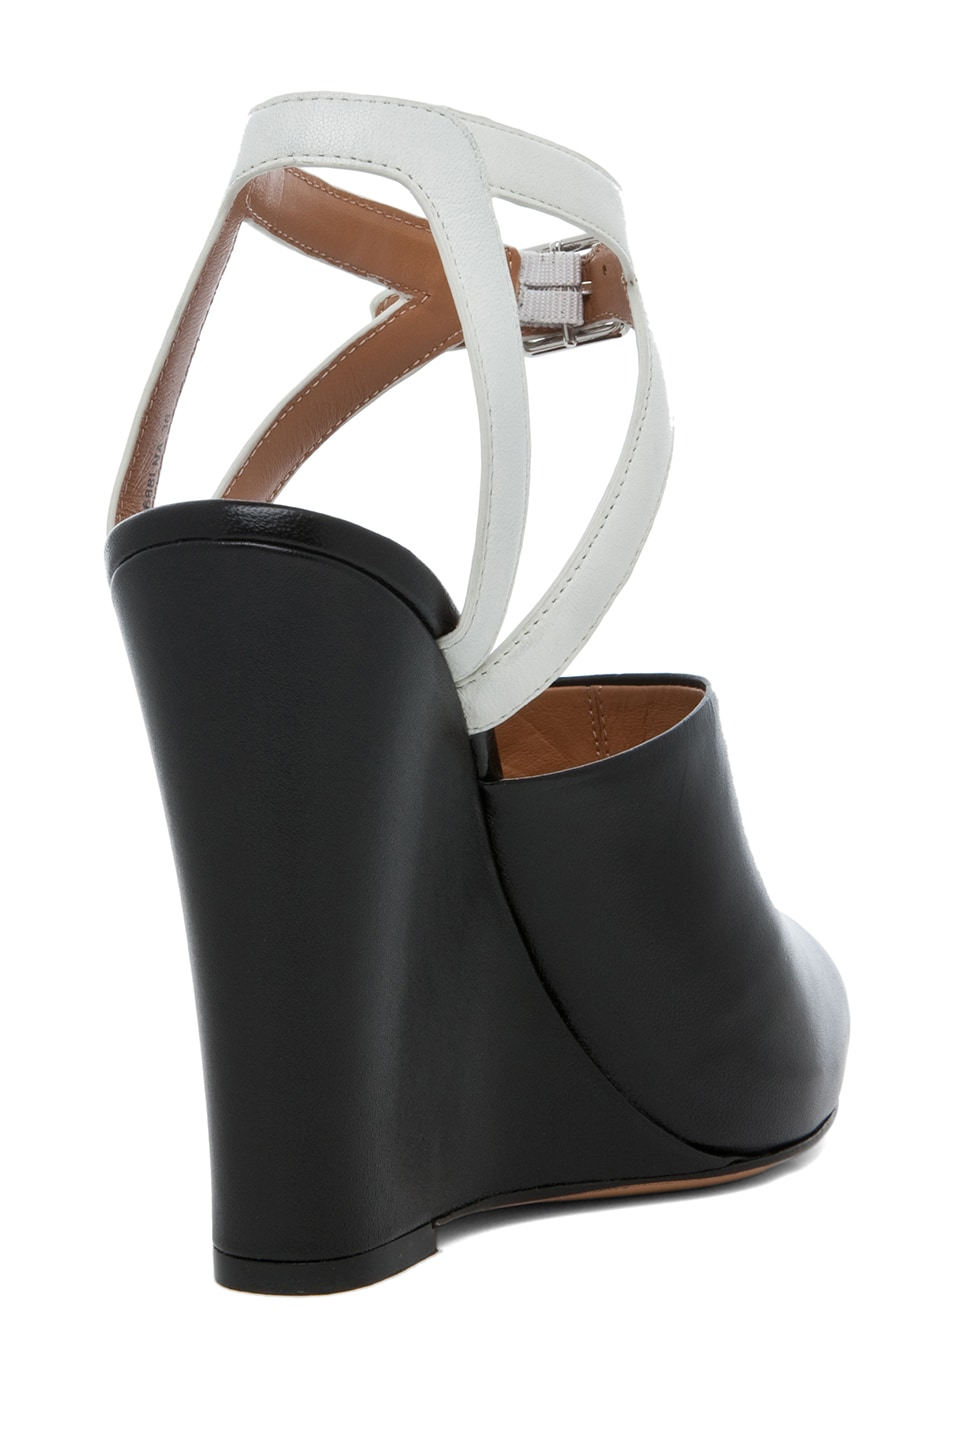 Image 3 of 3.1 phillip lim Juliette Leather Wedge in Black & White